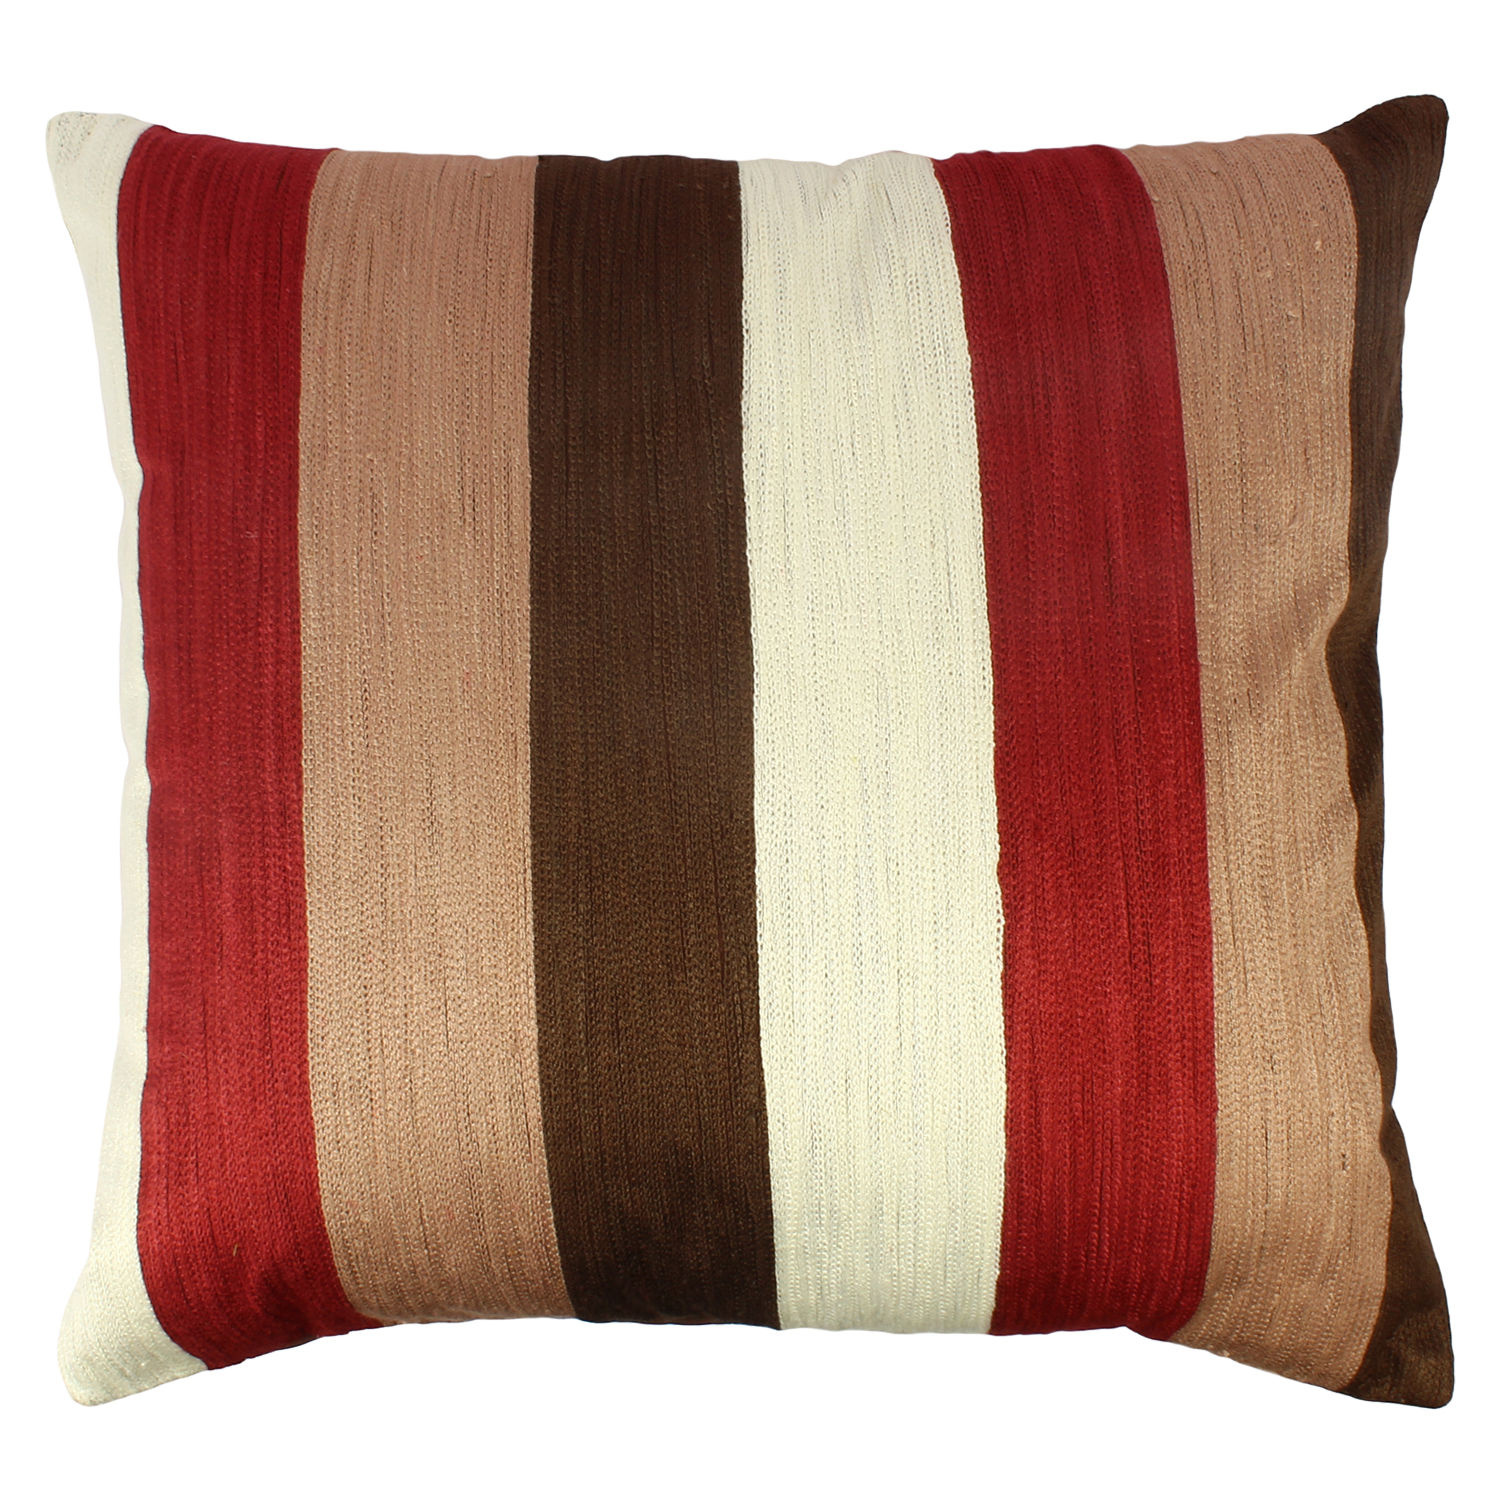 cover decorating pillow hikea byekeya ikea christmas atypical two part gurli mykea red